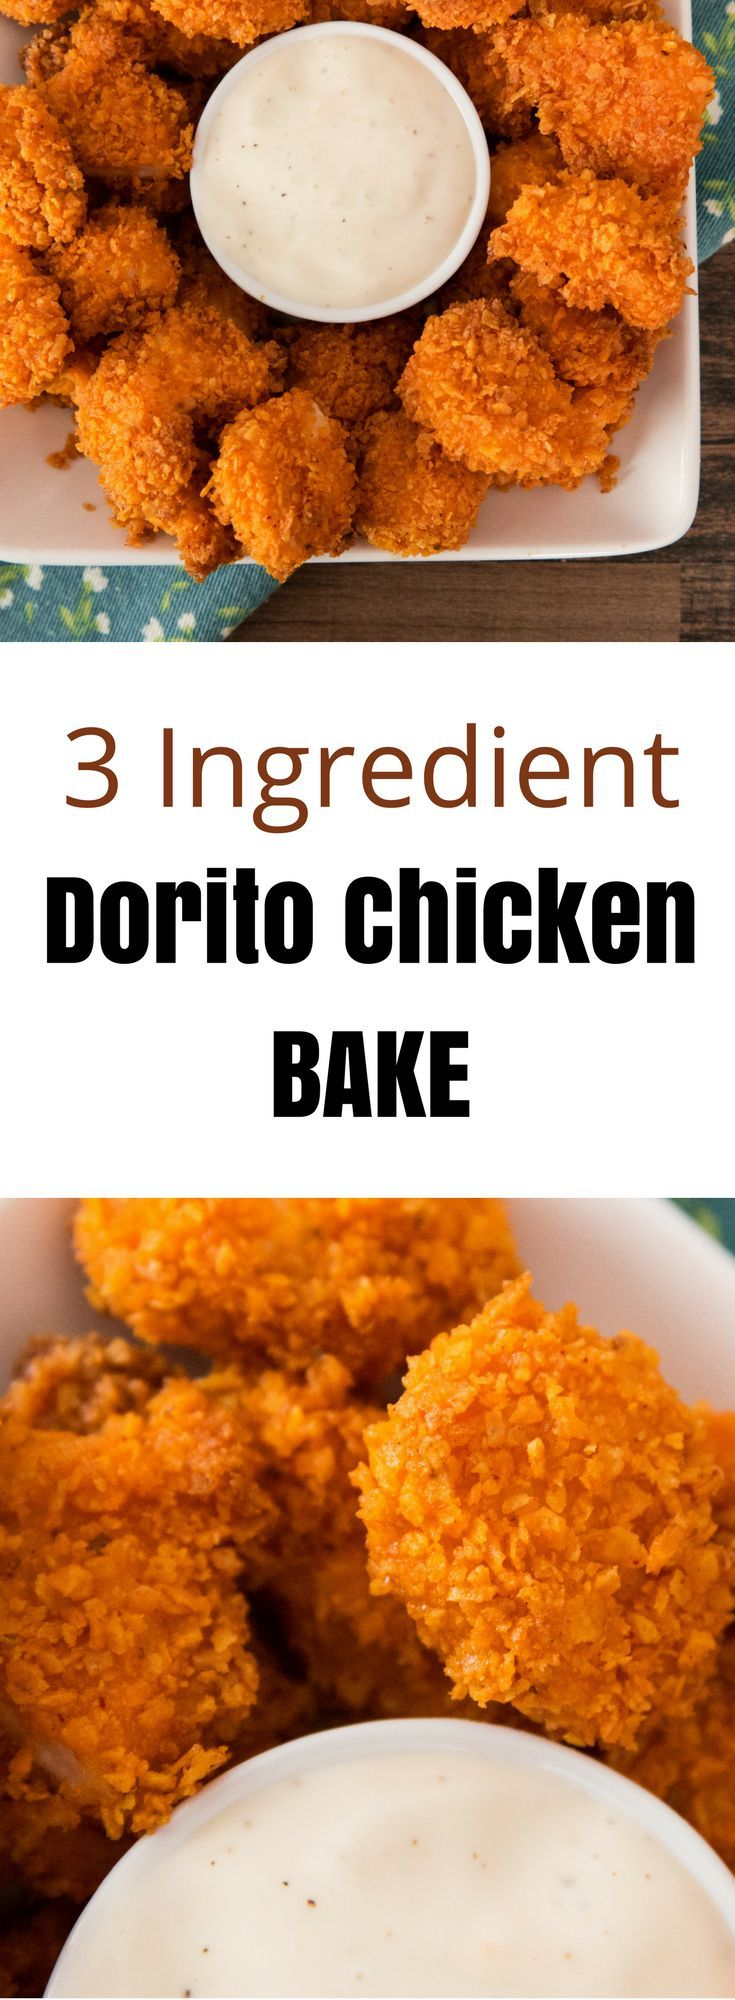 3 Ingredient Popcorn Chicken Bake - so yummy with a Dorito crust. It's an easy snack for the weekend!